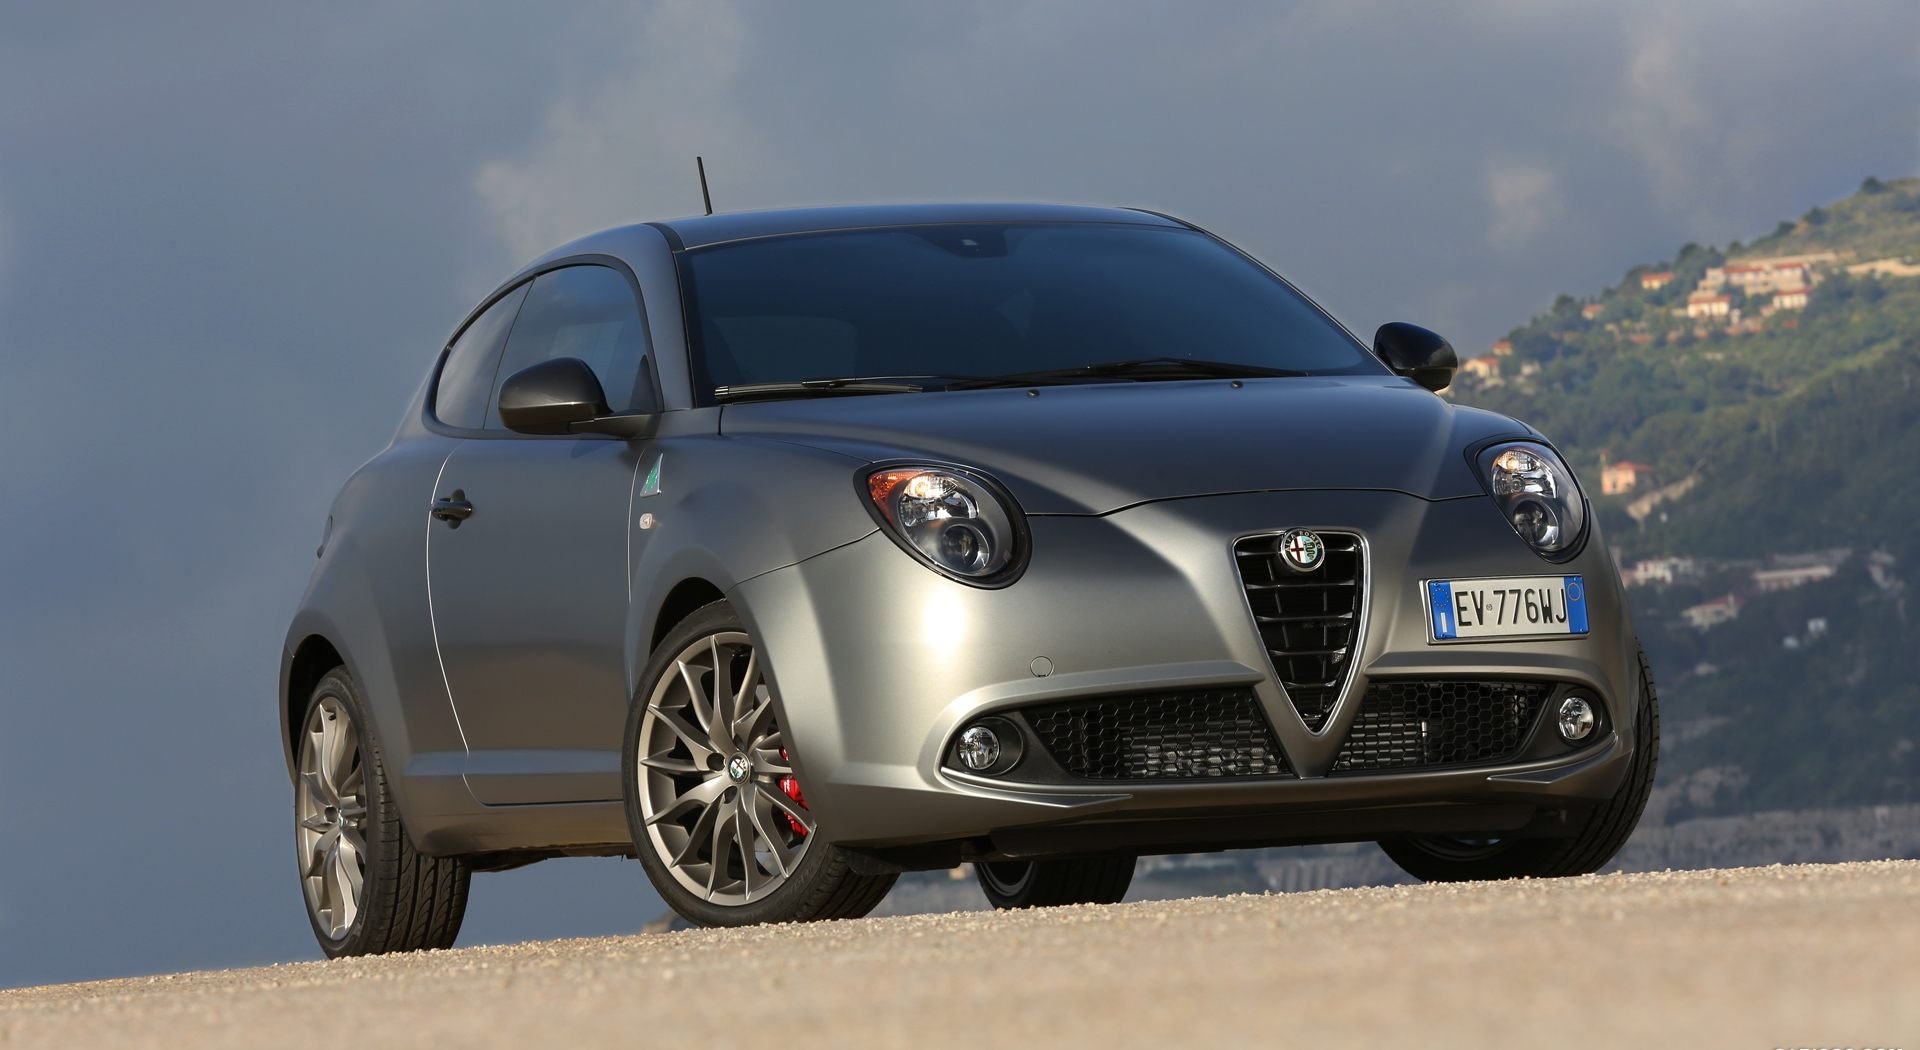 alfa romeo mito wallpaper front hd desktop wallpapers 4k hd. Black Bedroom Furniture Sets. Home Design Ideas